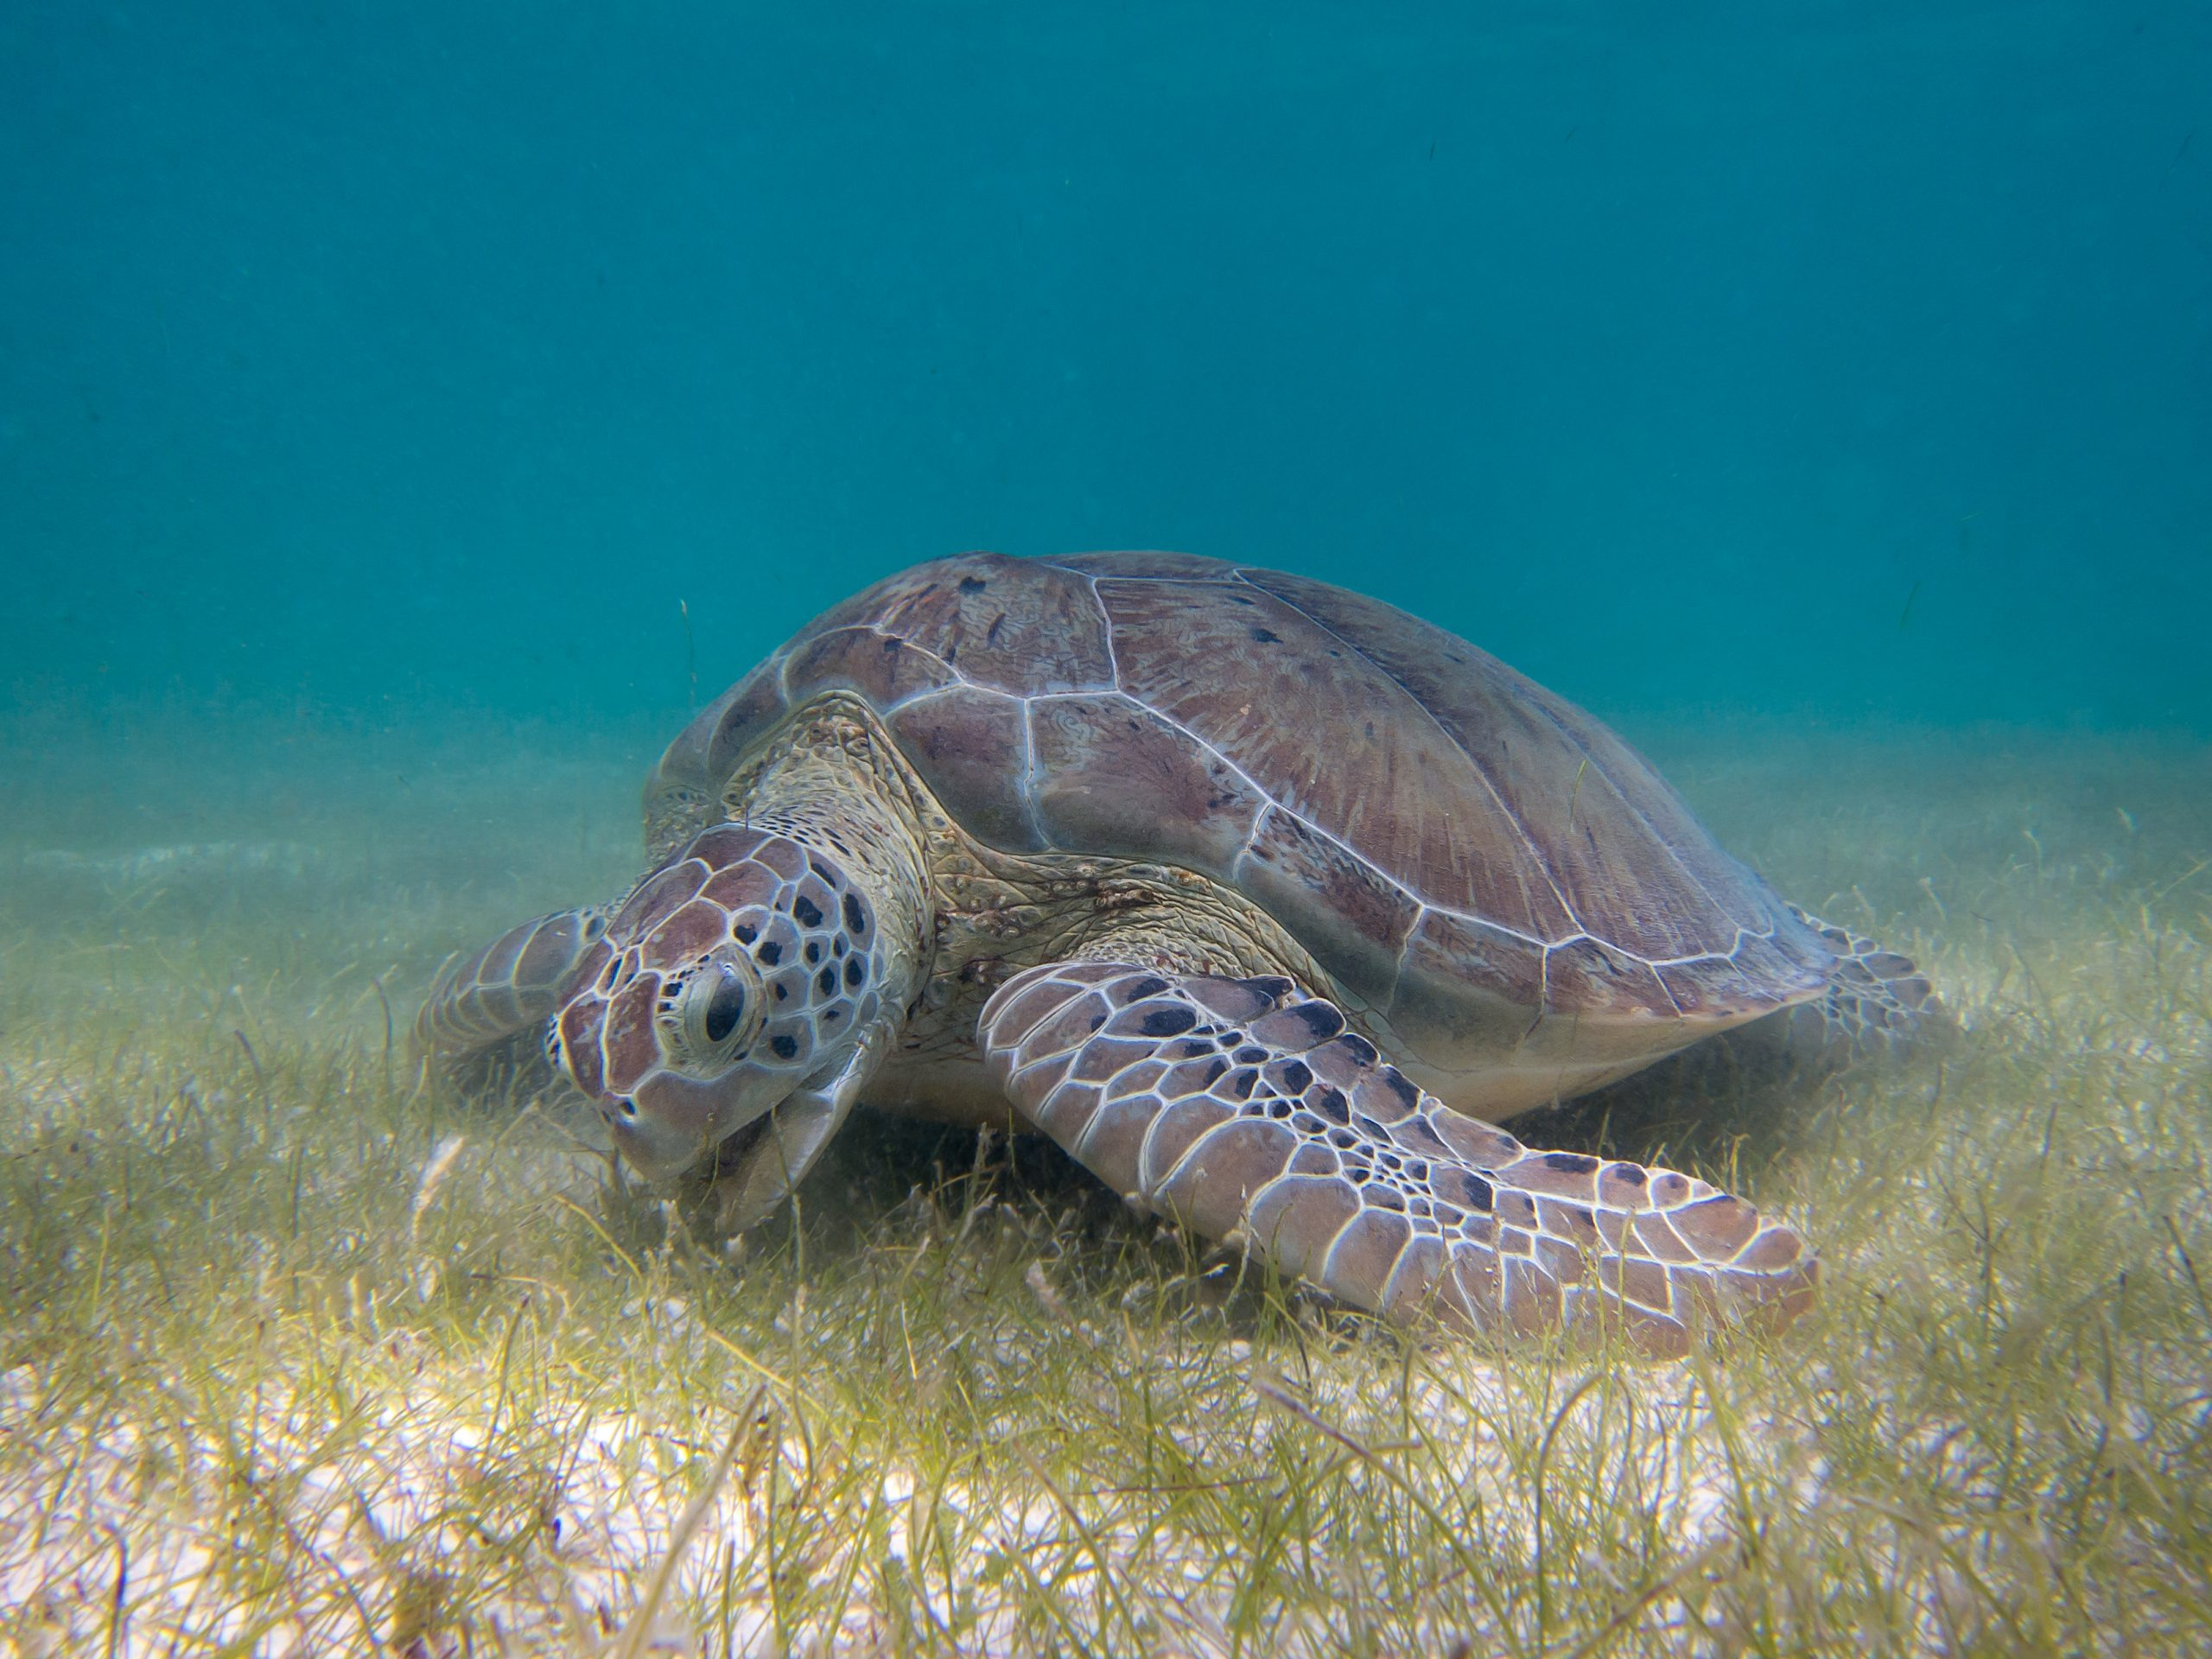 High-TEK Turtle Monitoring: Lessons from Traditional Ecological Knowledge